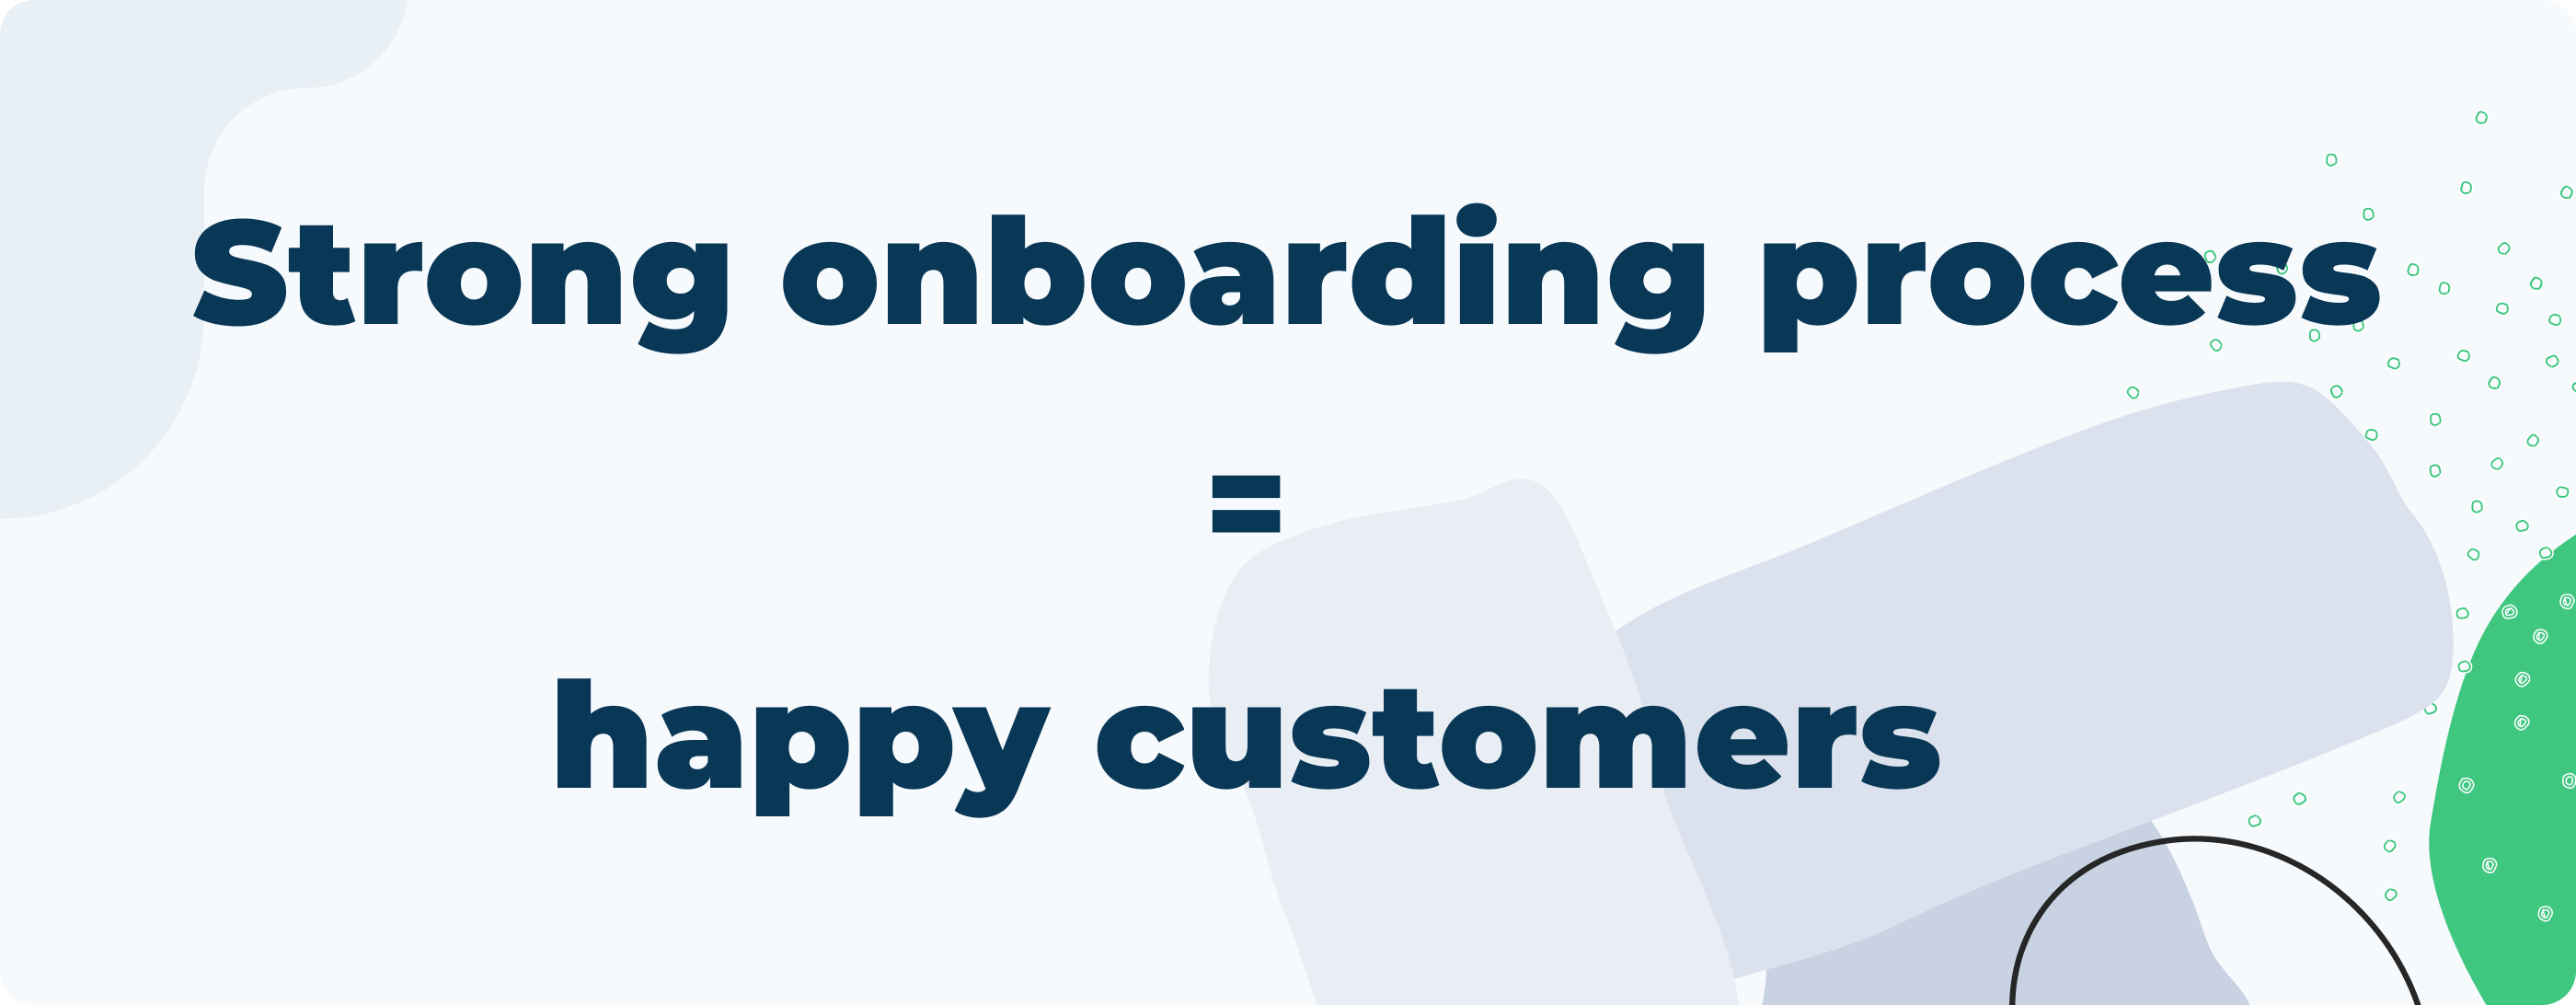 Onboarding reduces new hires anxiety